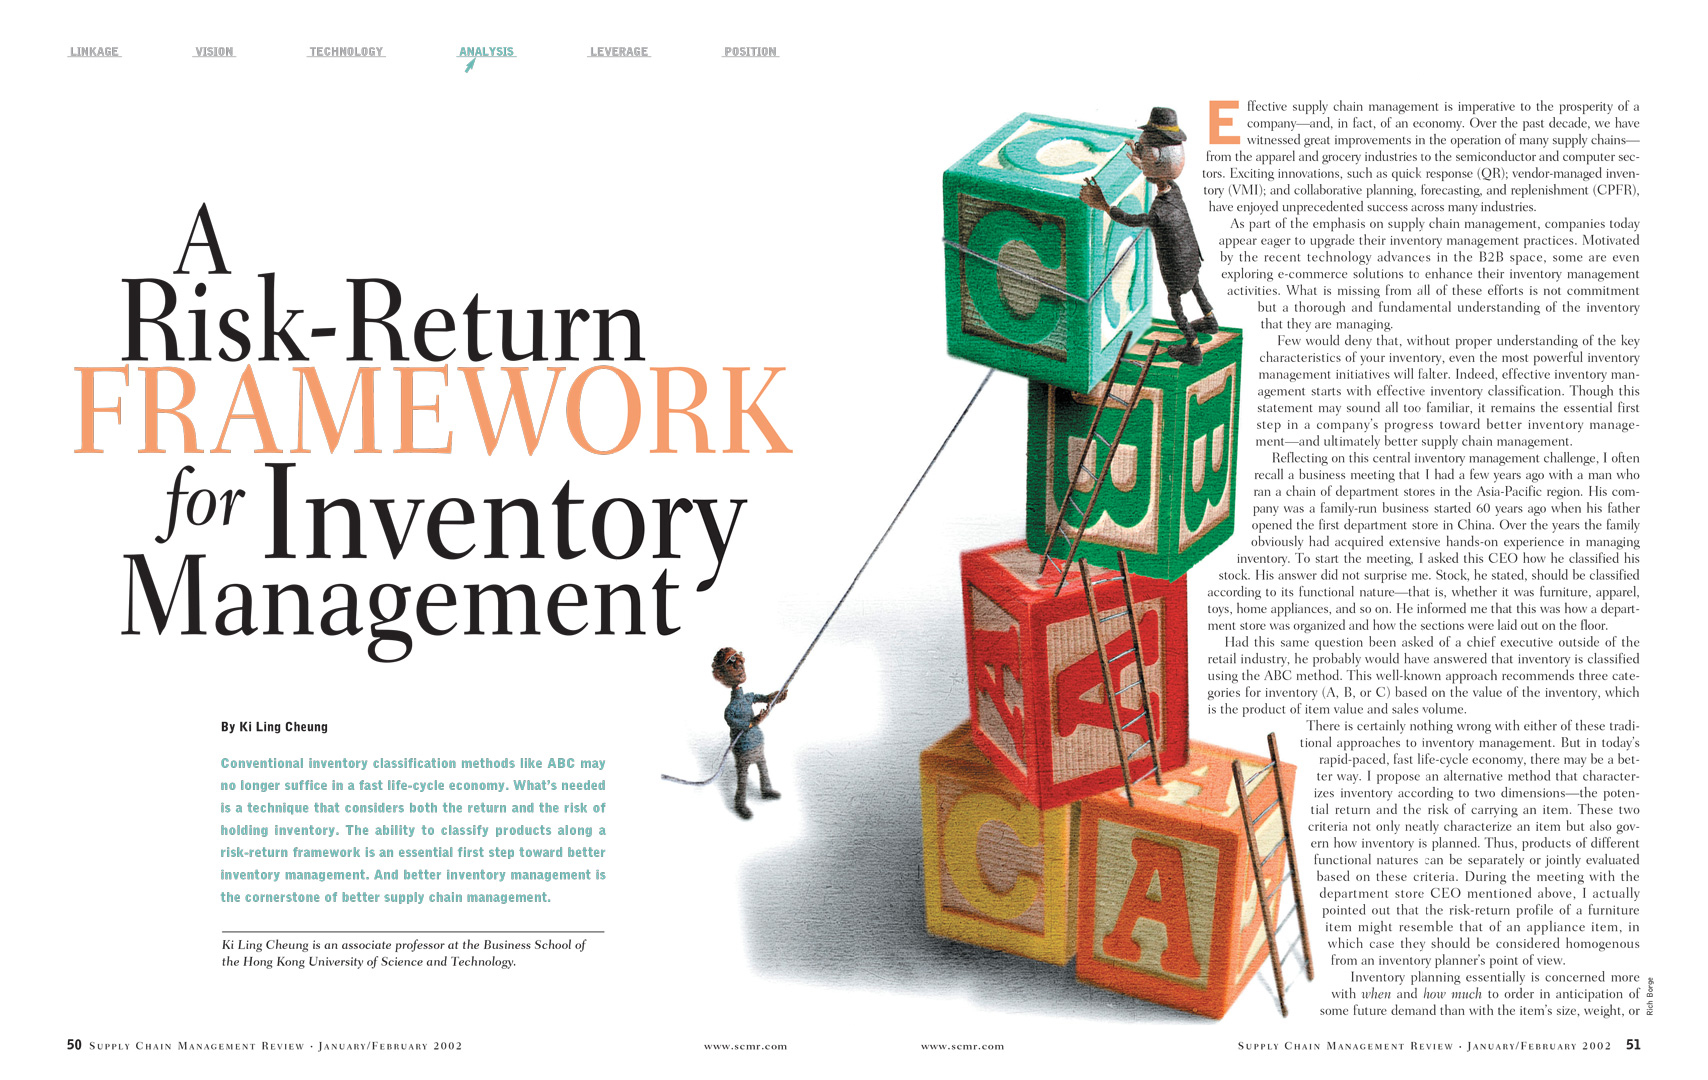 A Risk-Return Framework for Inventory Management